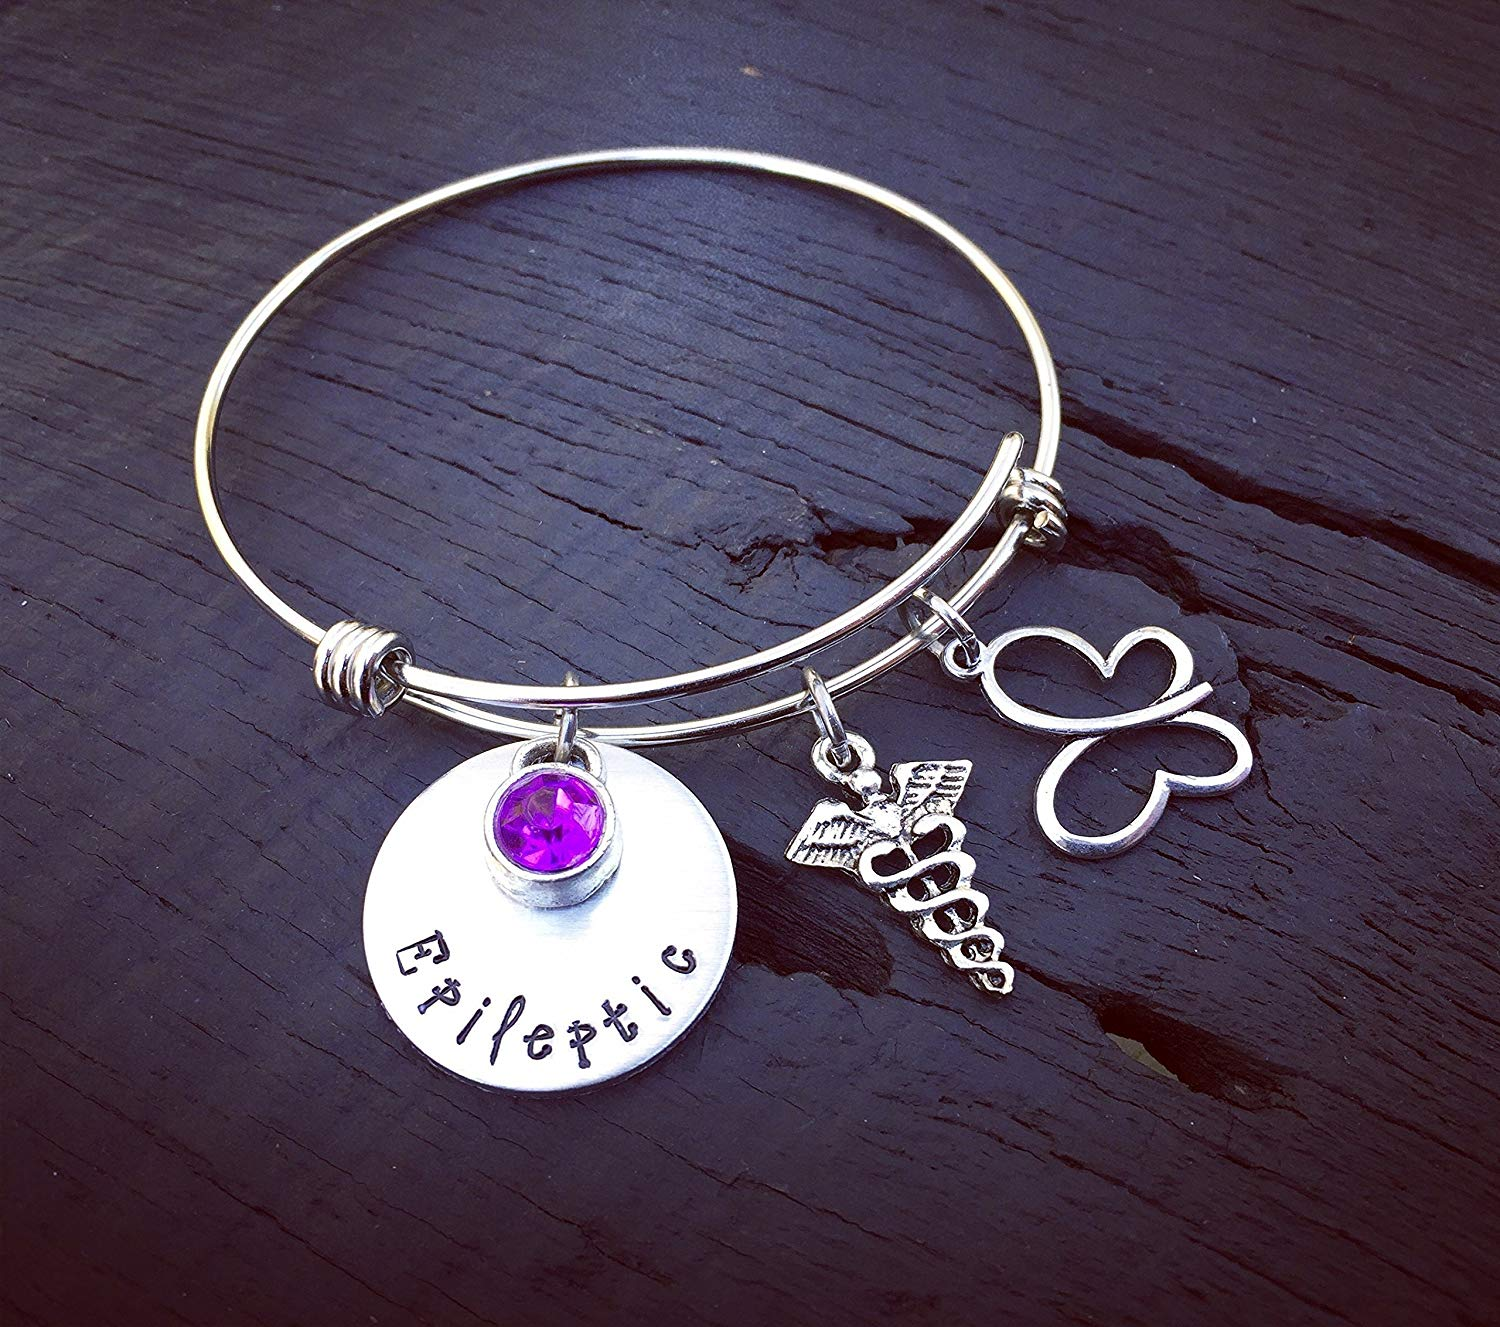 Get Quotations Epileptic Bracelet Epilepsy Jewelry Medical Alert Gift For